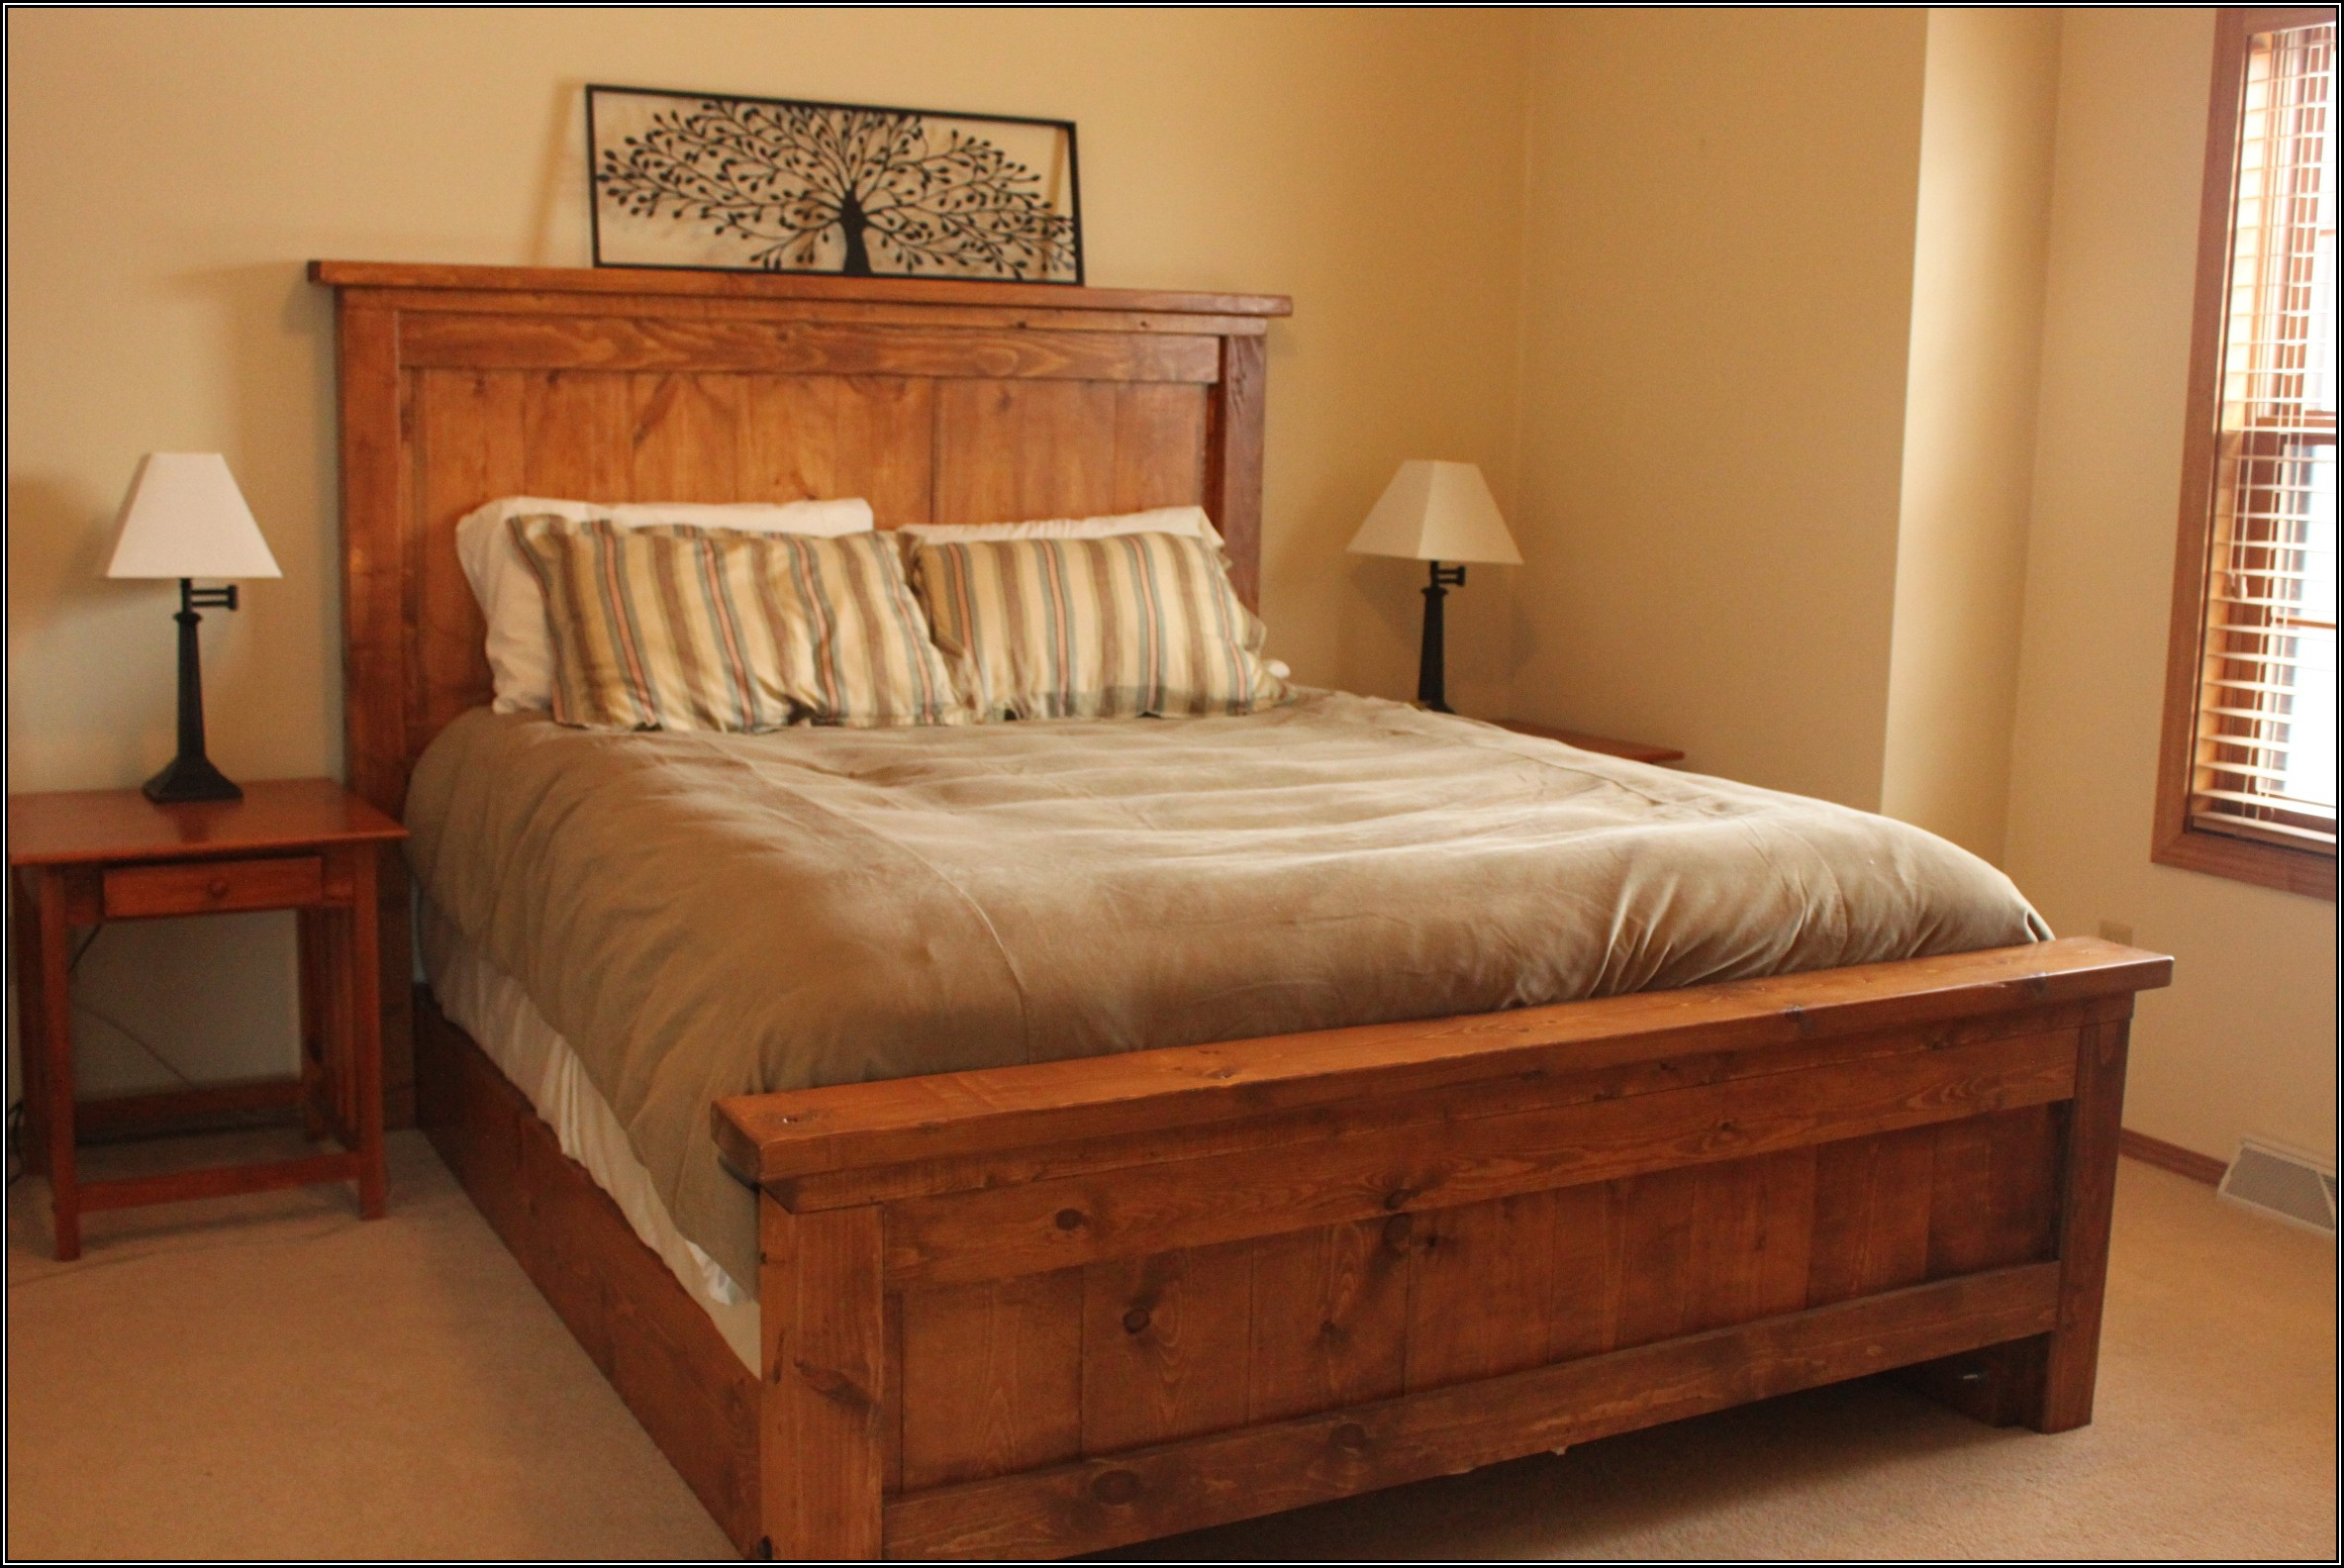 Modern rustic bed frame idea with high